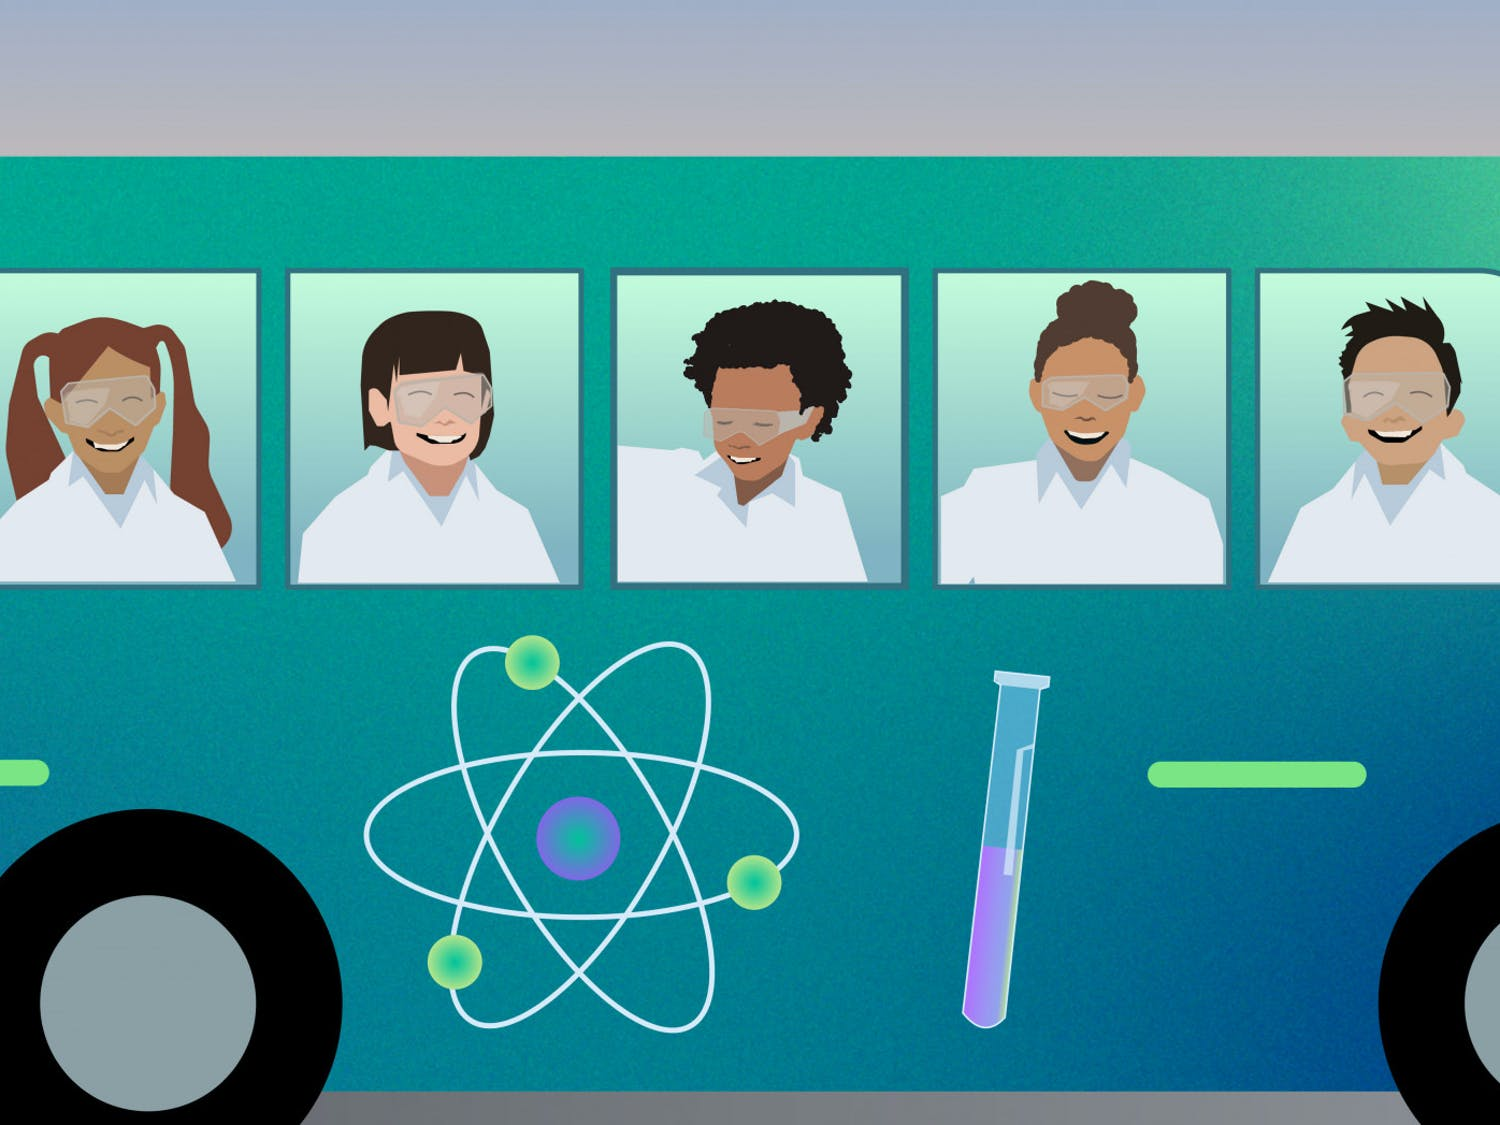 The idea of the Science Bus originated in Tucson, Arizona, when Chris DiScenza founded the Physics Factory with a group of three other teachers. It is a refurbished school bus housing interactive physics exhibits.